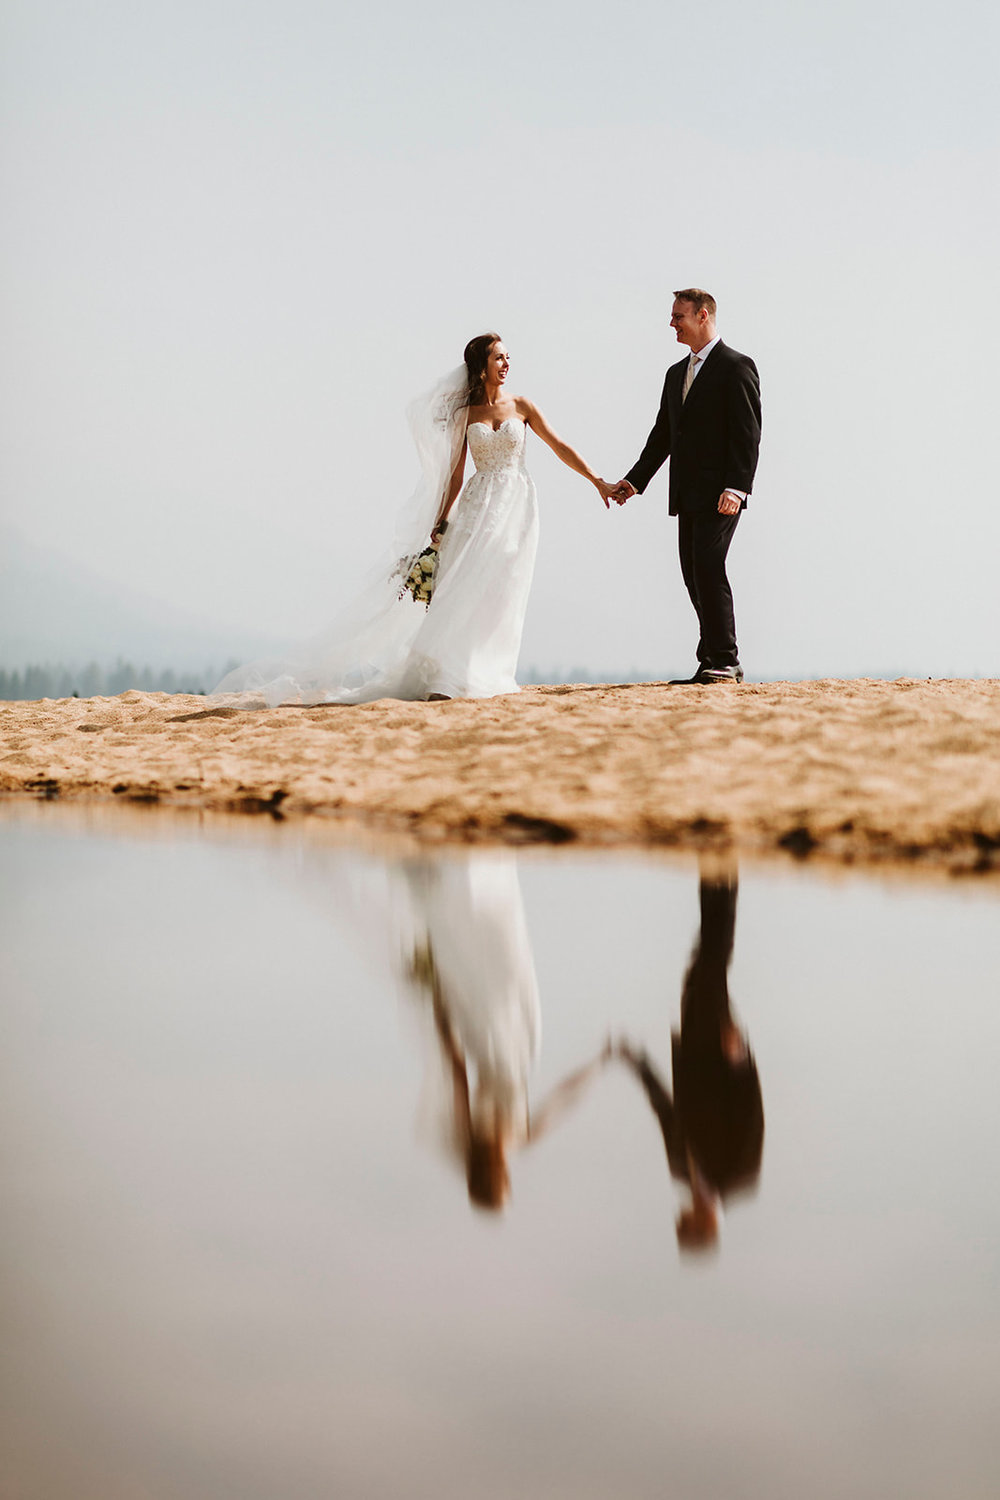 _P8A7416vild-vild photography-photography-wedding-wedding photography-tahoe-lake tahoe-lake tahoe wedding photographer-nevada wedding photographer-mountain wedding.jpg